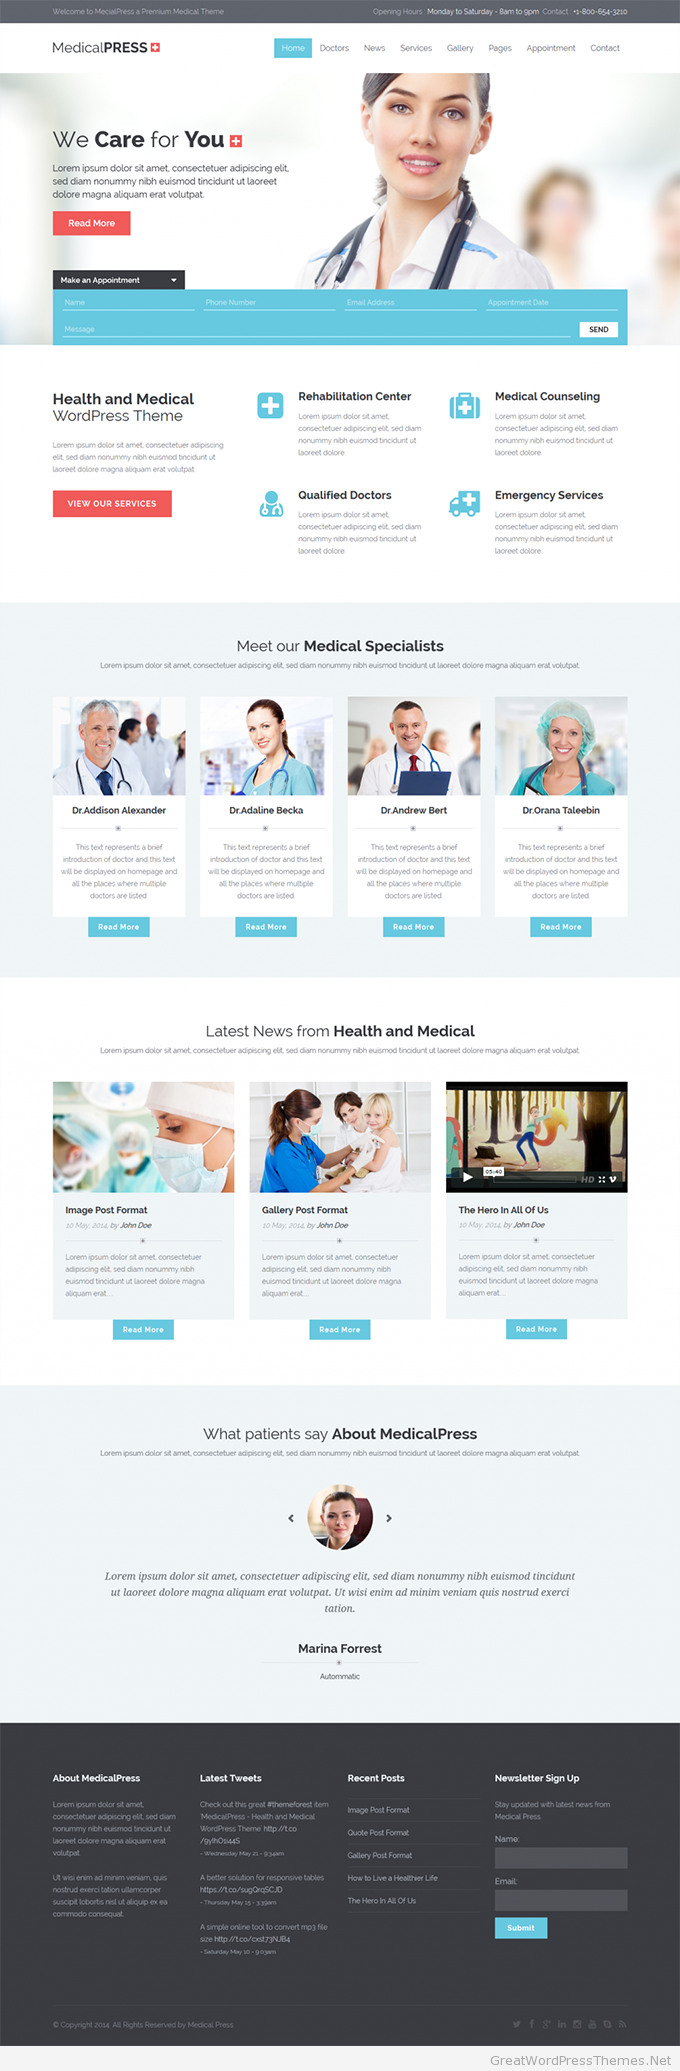 medicalpress-theme